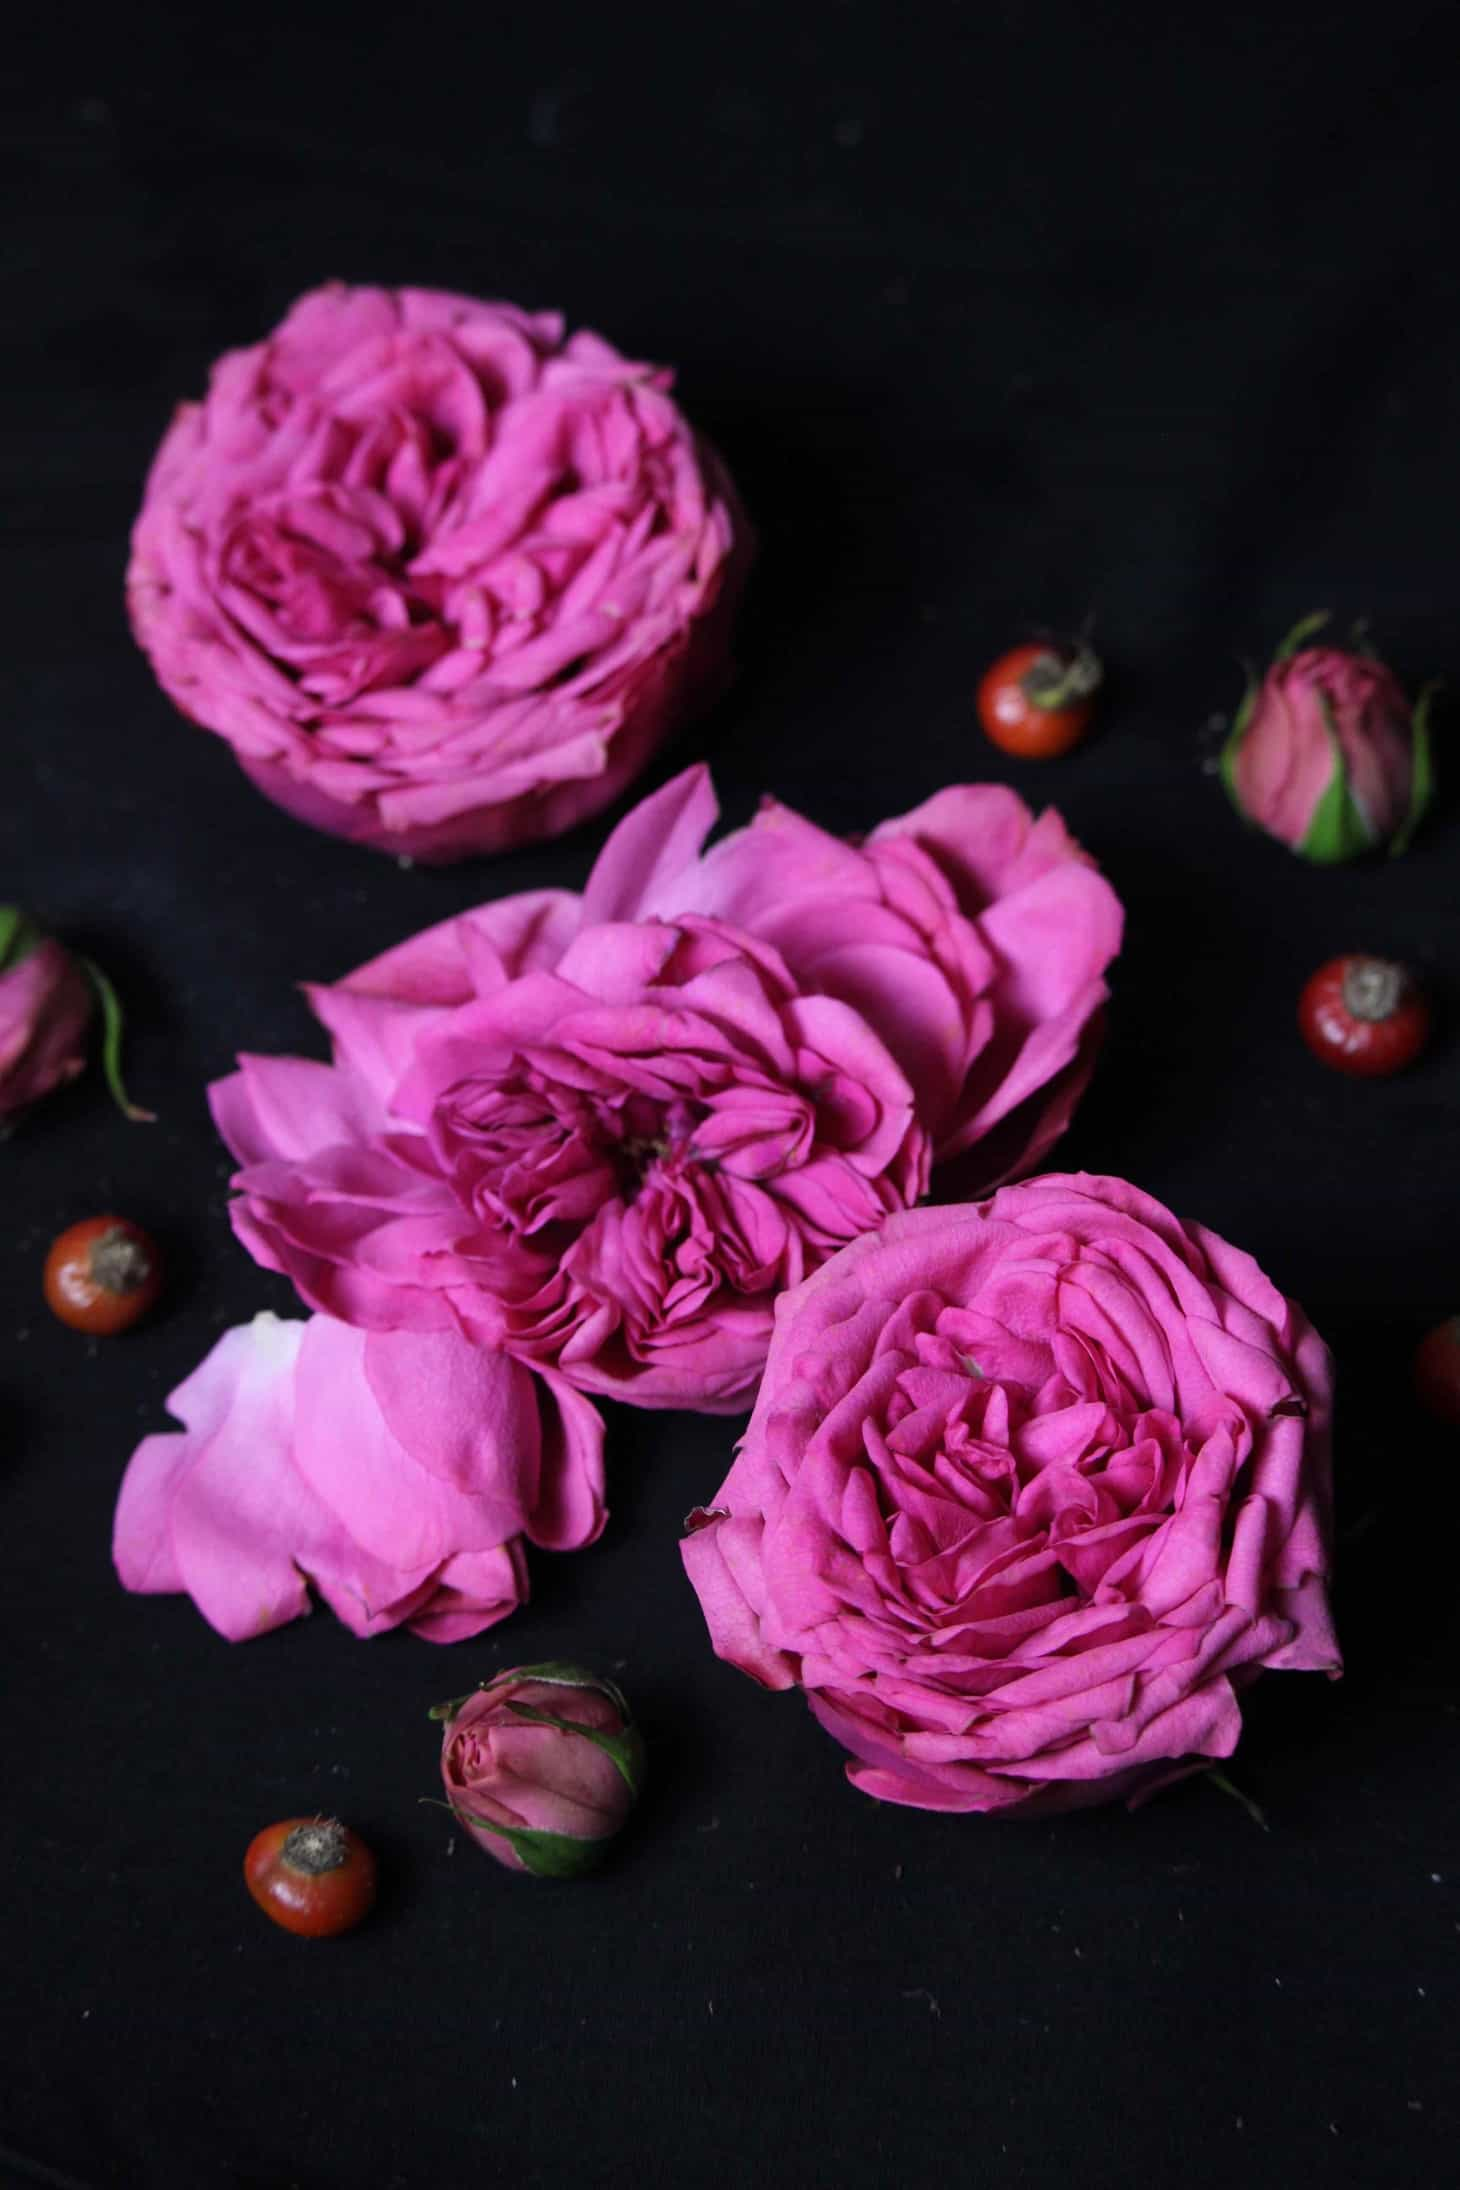 Photographing flowers against a black background, flowers on black, moody flowers, black background photography, How to Photograph Flowers with a Black Background, black background for floral macro, black background photography, black backdrop, photography black background, photo black background, roses on black background